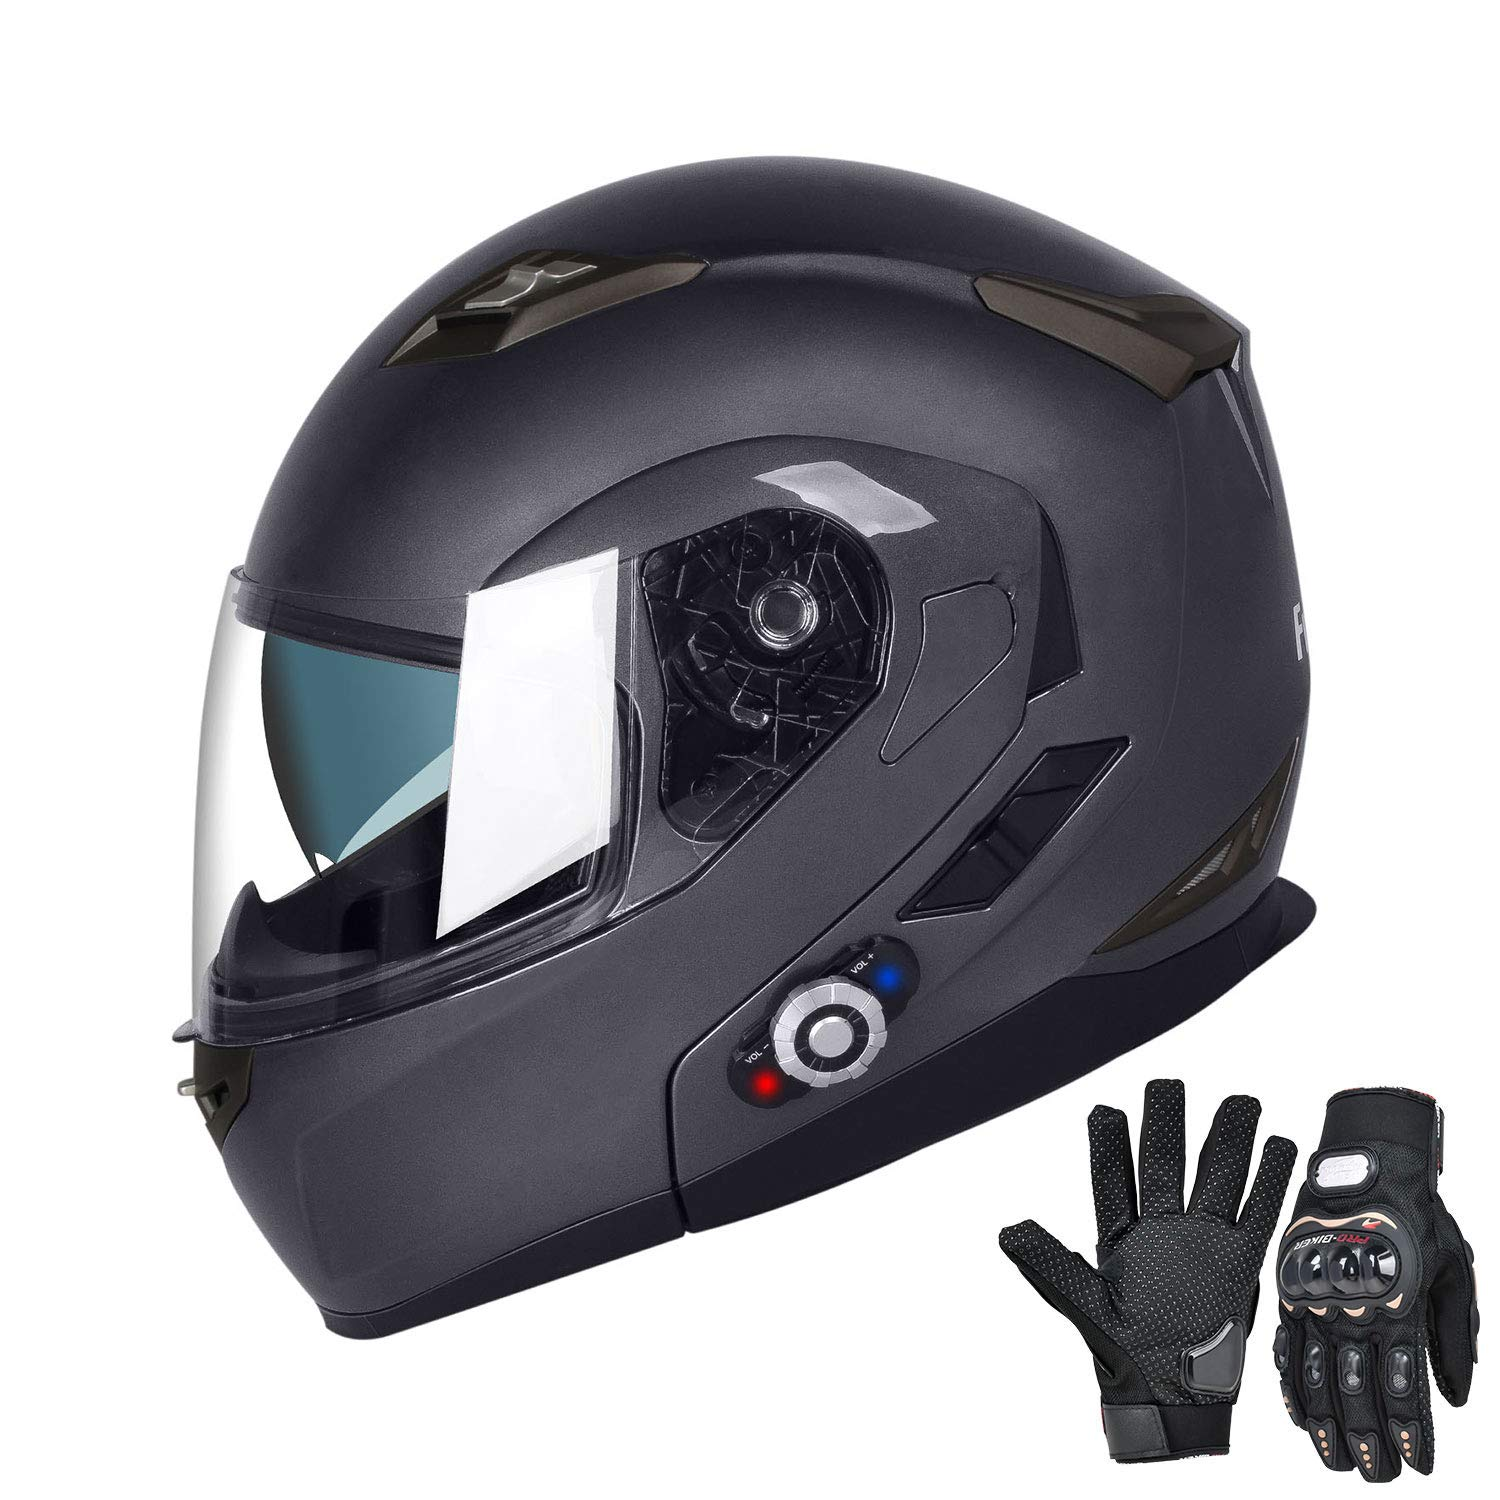 FreedConn Bluetooth Motorcycle Helmets Speakers Integrated Modular Flip up Dual Visors Full Face Built-in Bluetooth Mp3 Intercom headset Communication Range